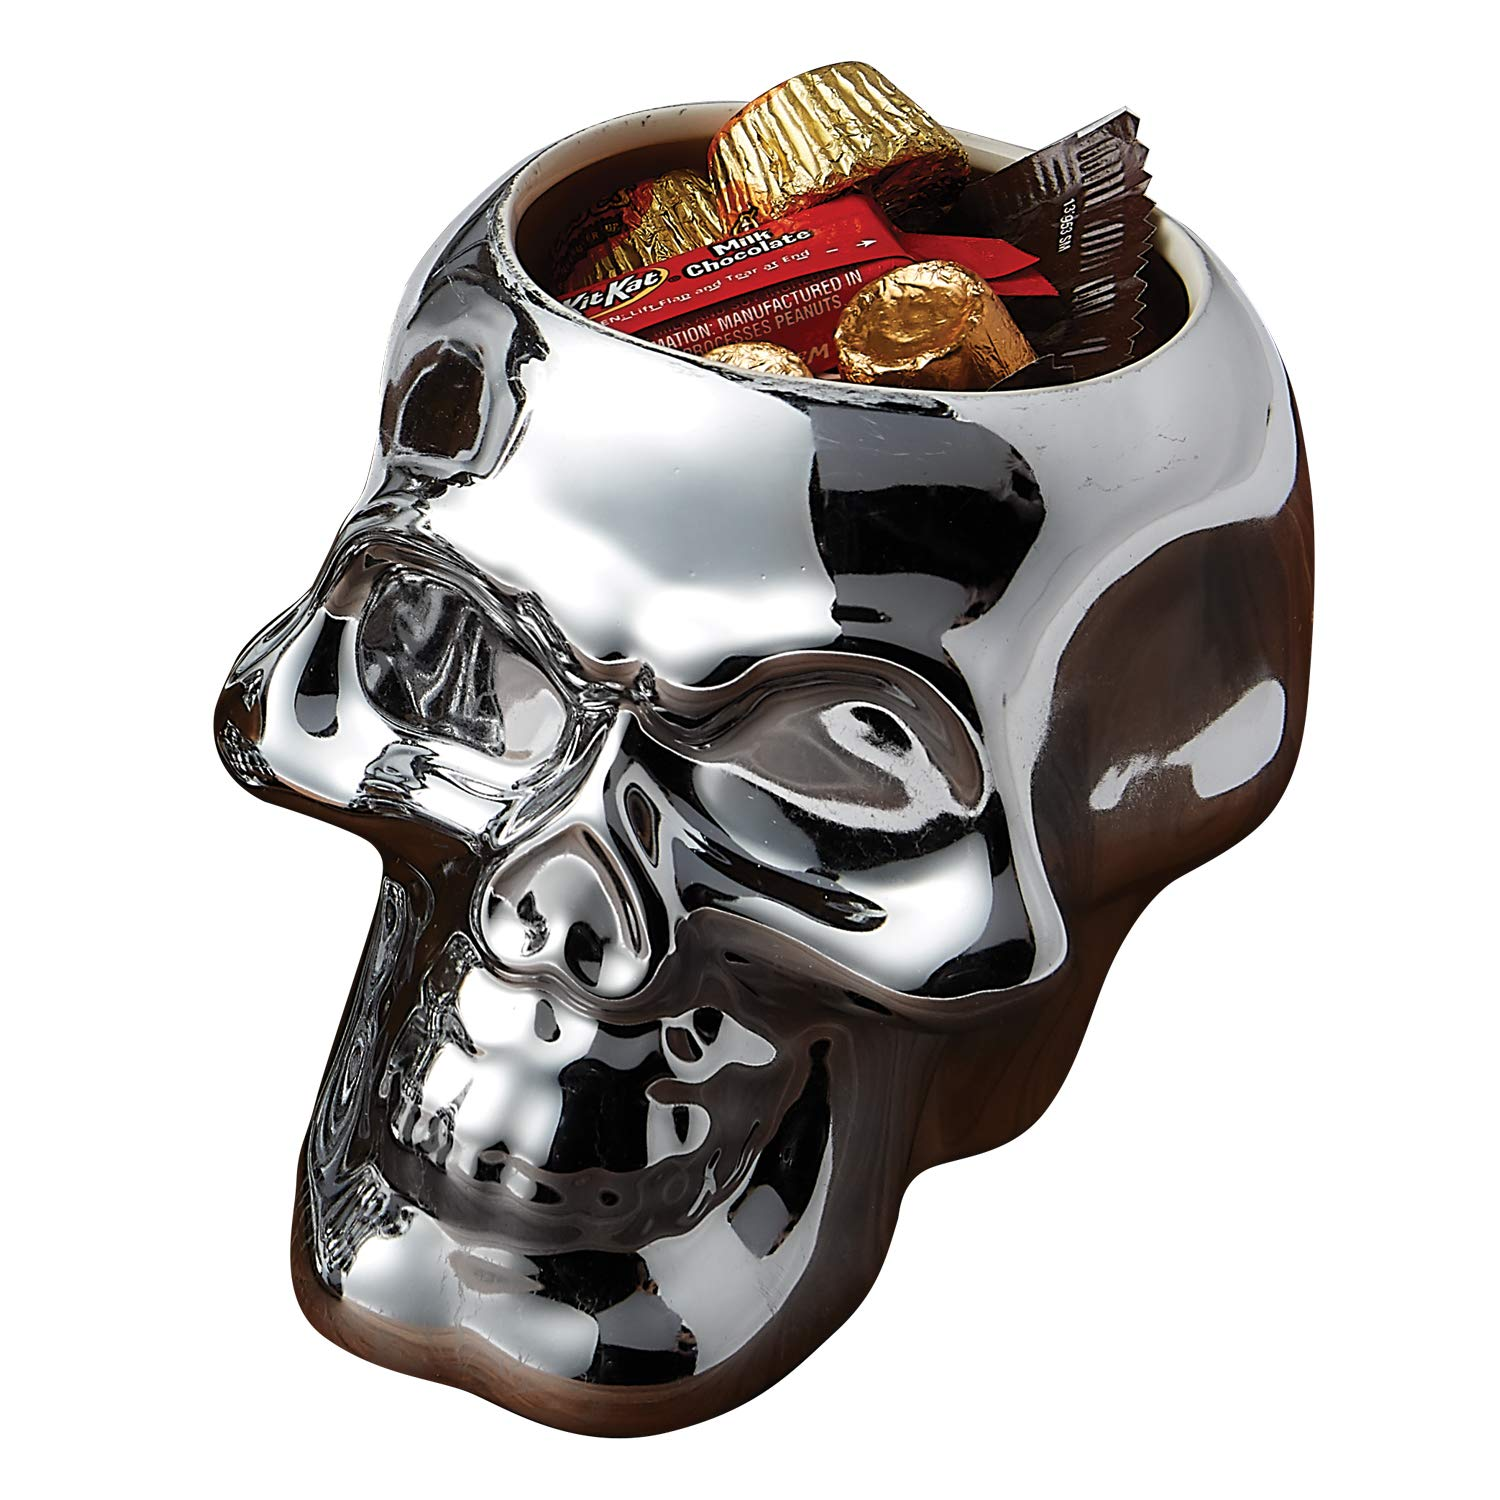 Silvertone Mirror Skull Shaped Small 4.5 x 4 Inch Earthenware Candy Bowl Design Imports